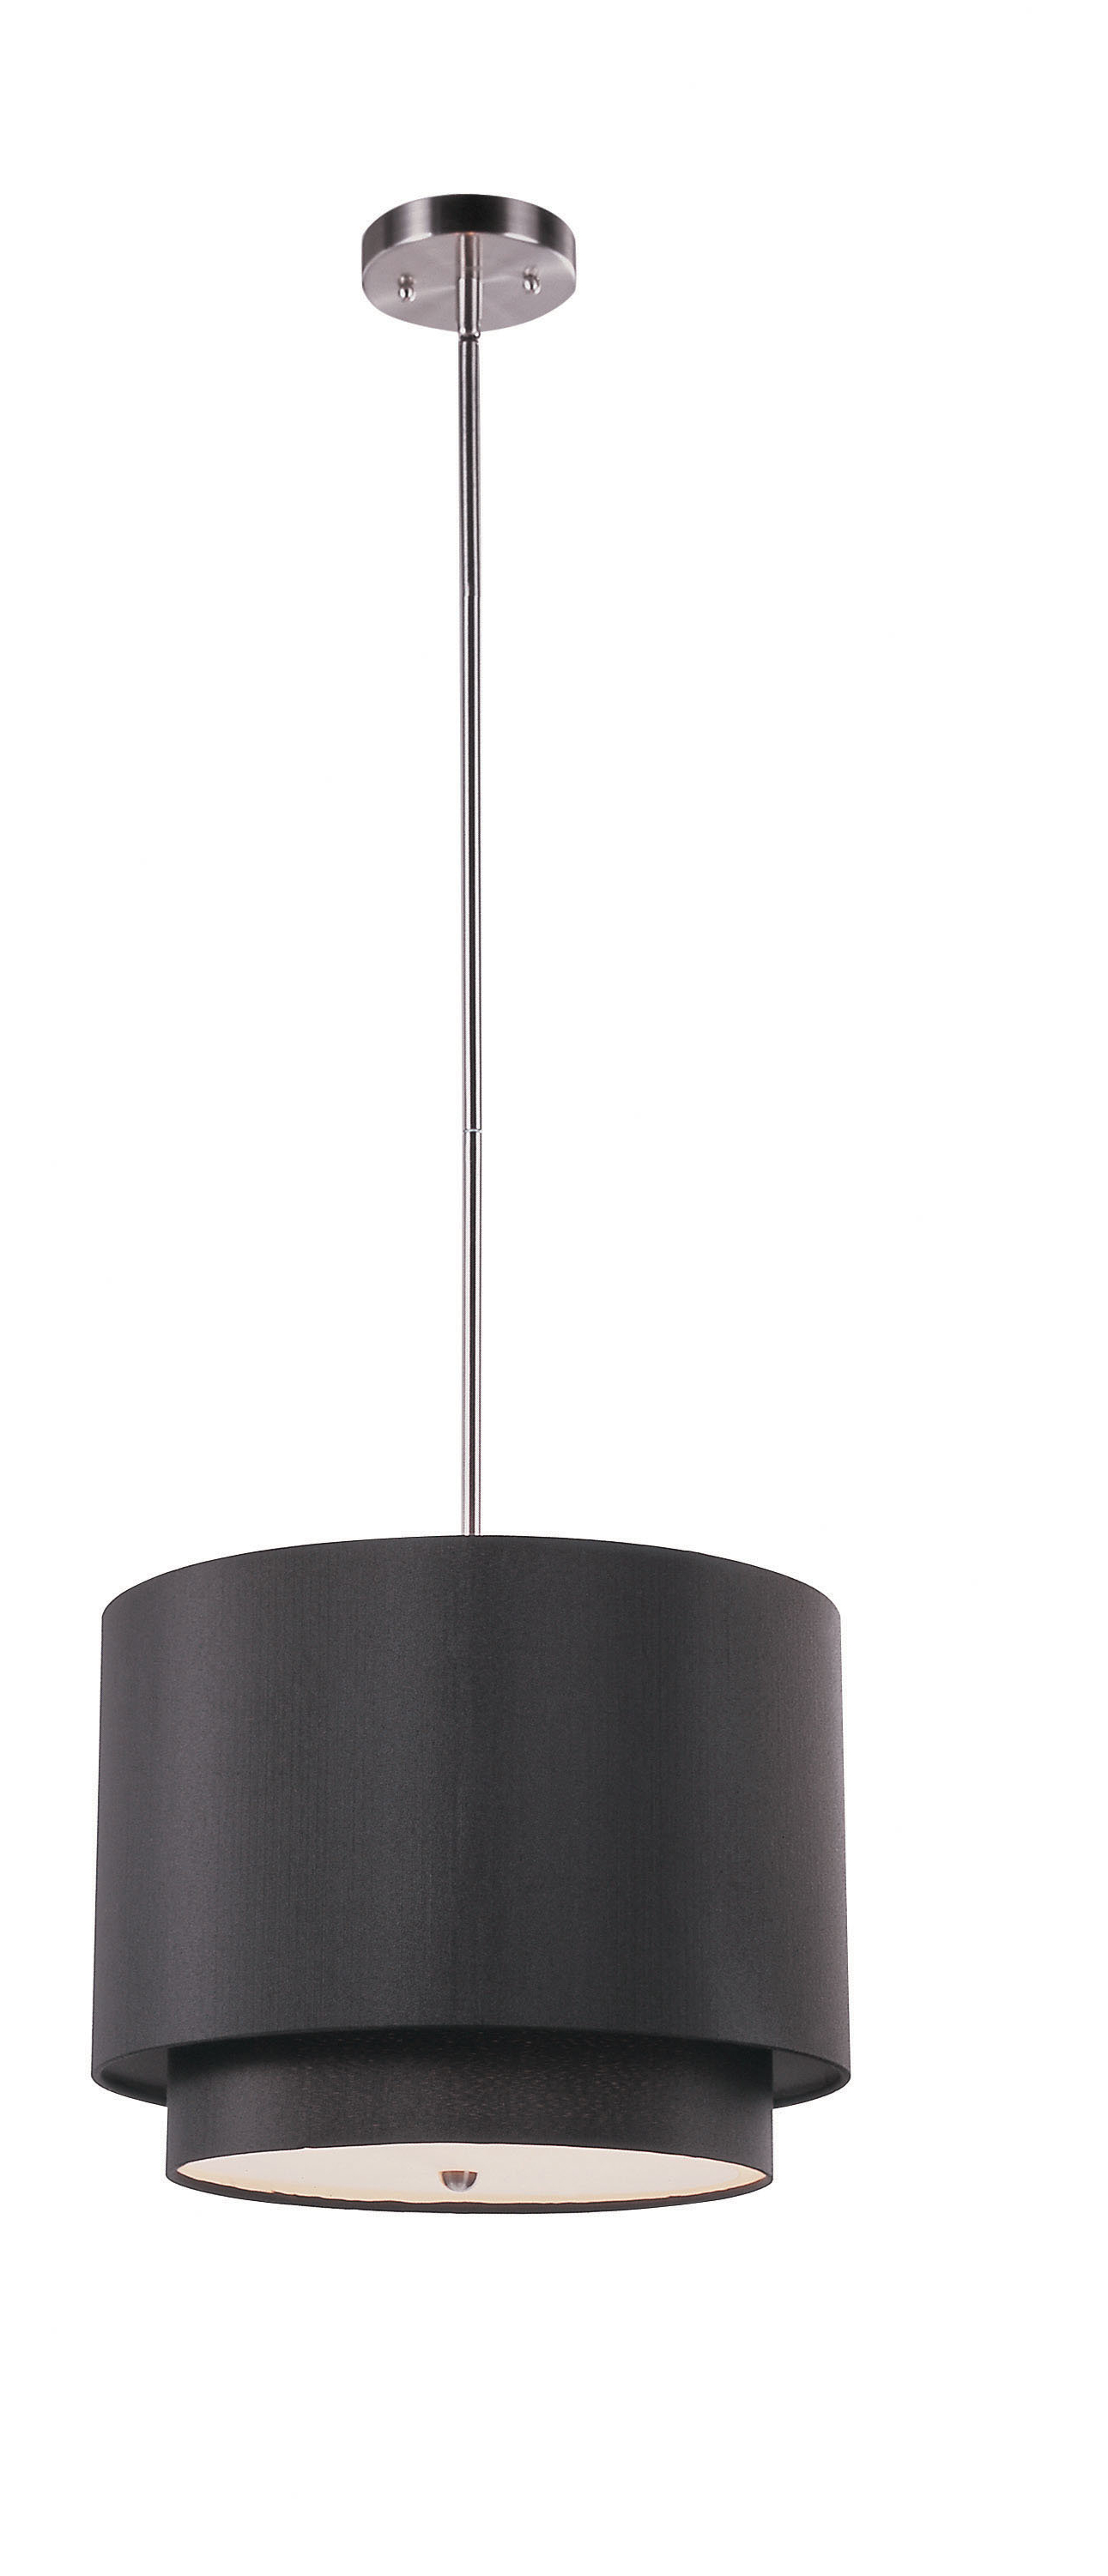 Burslem 3 Light Single Drum Pendant For Most Up To Date Friedland 3 Light Drum Tiered Pendants (View 9 of 25)